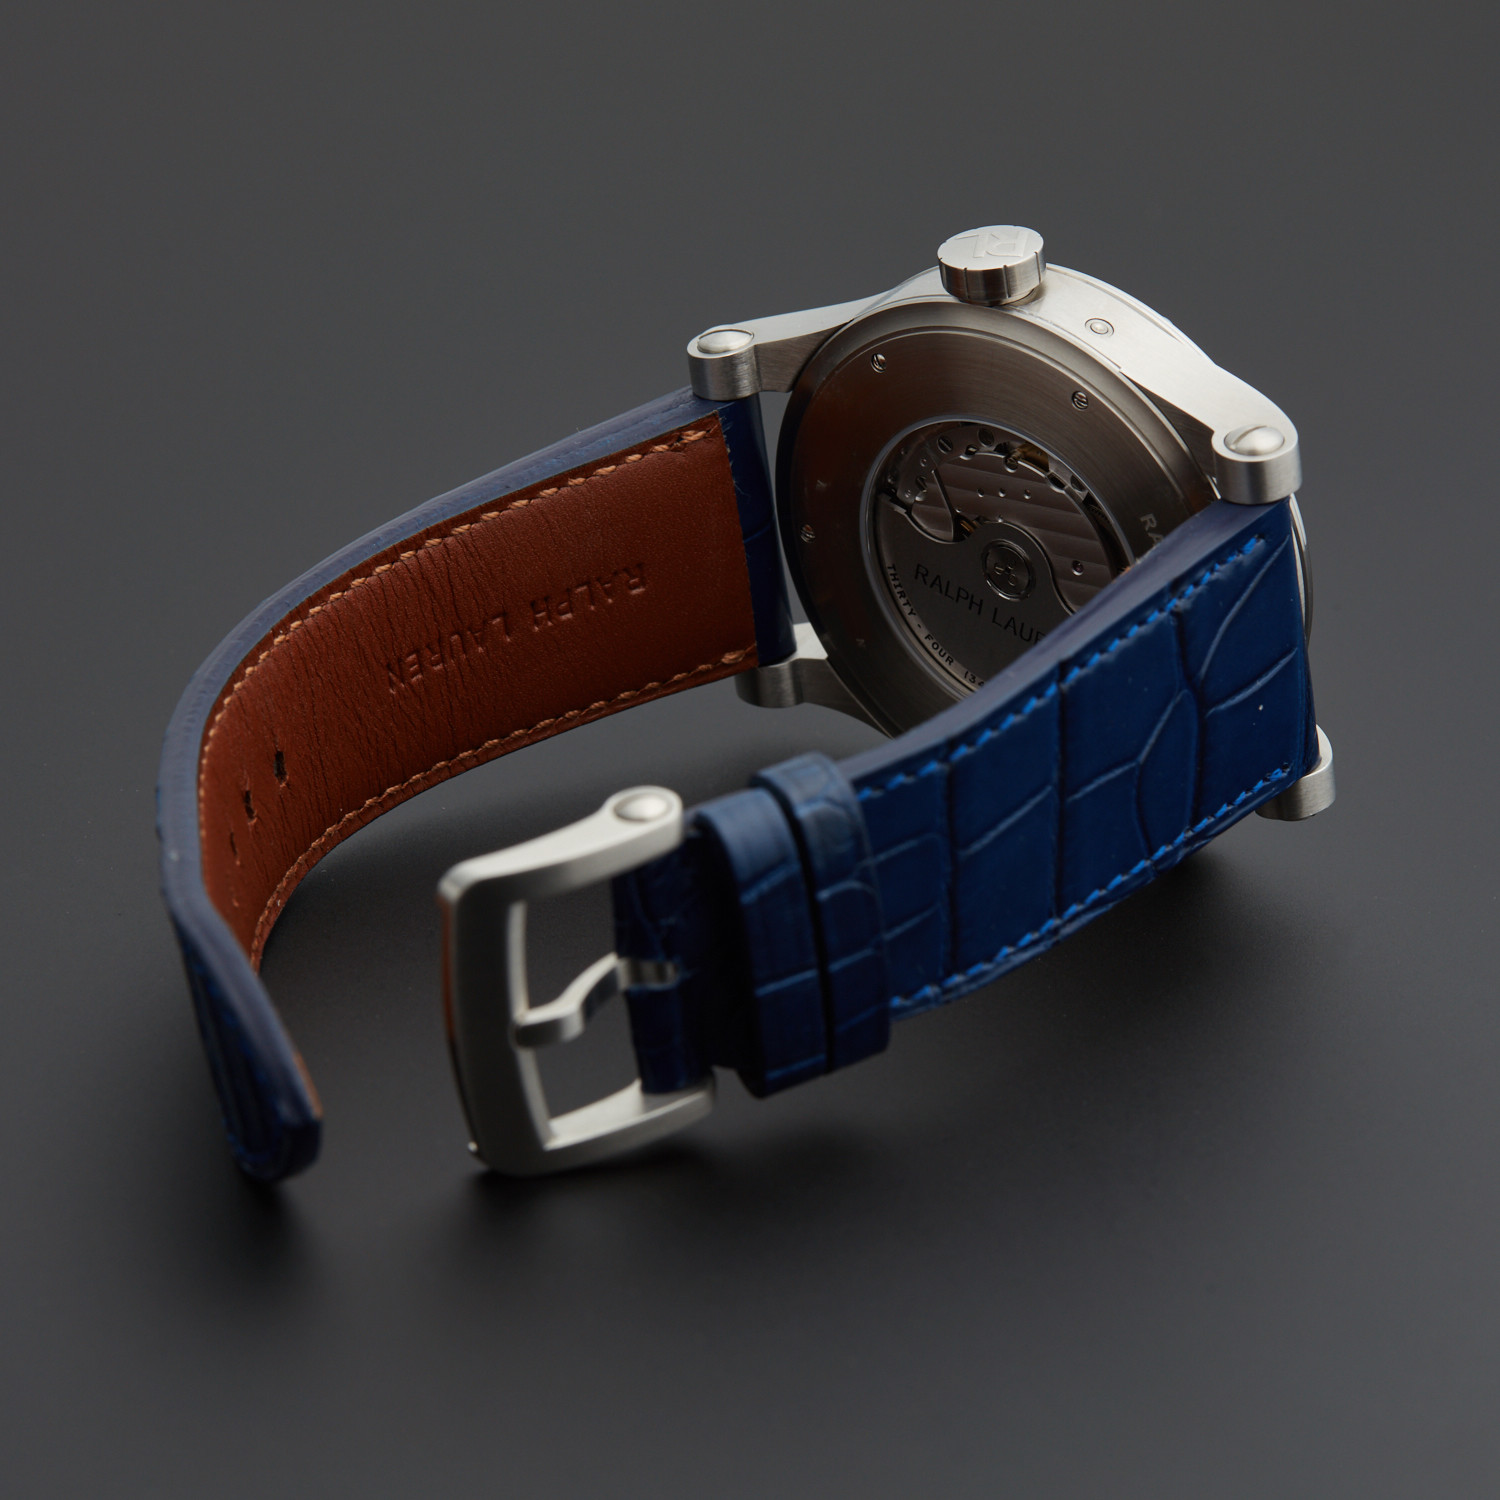 fb20ccf698b Ralph Lauren Sporting World Time Automatic    R0210700    New - The ...